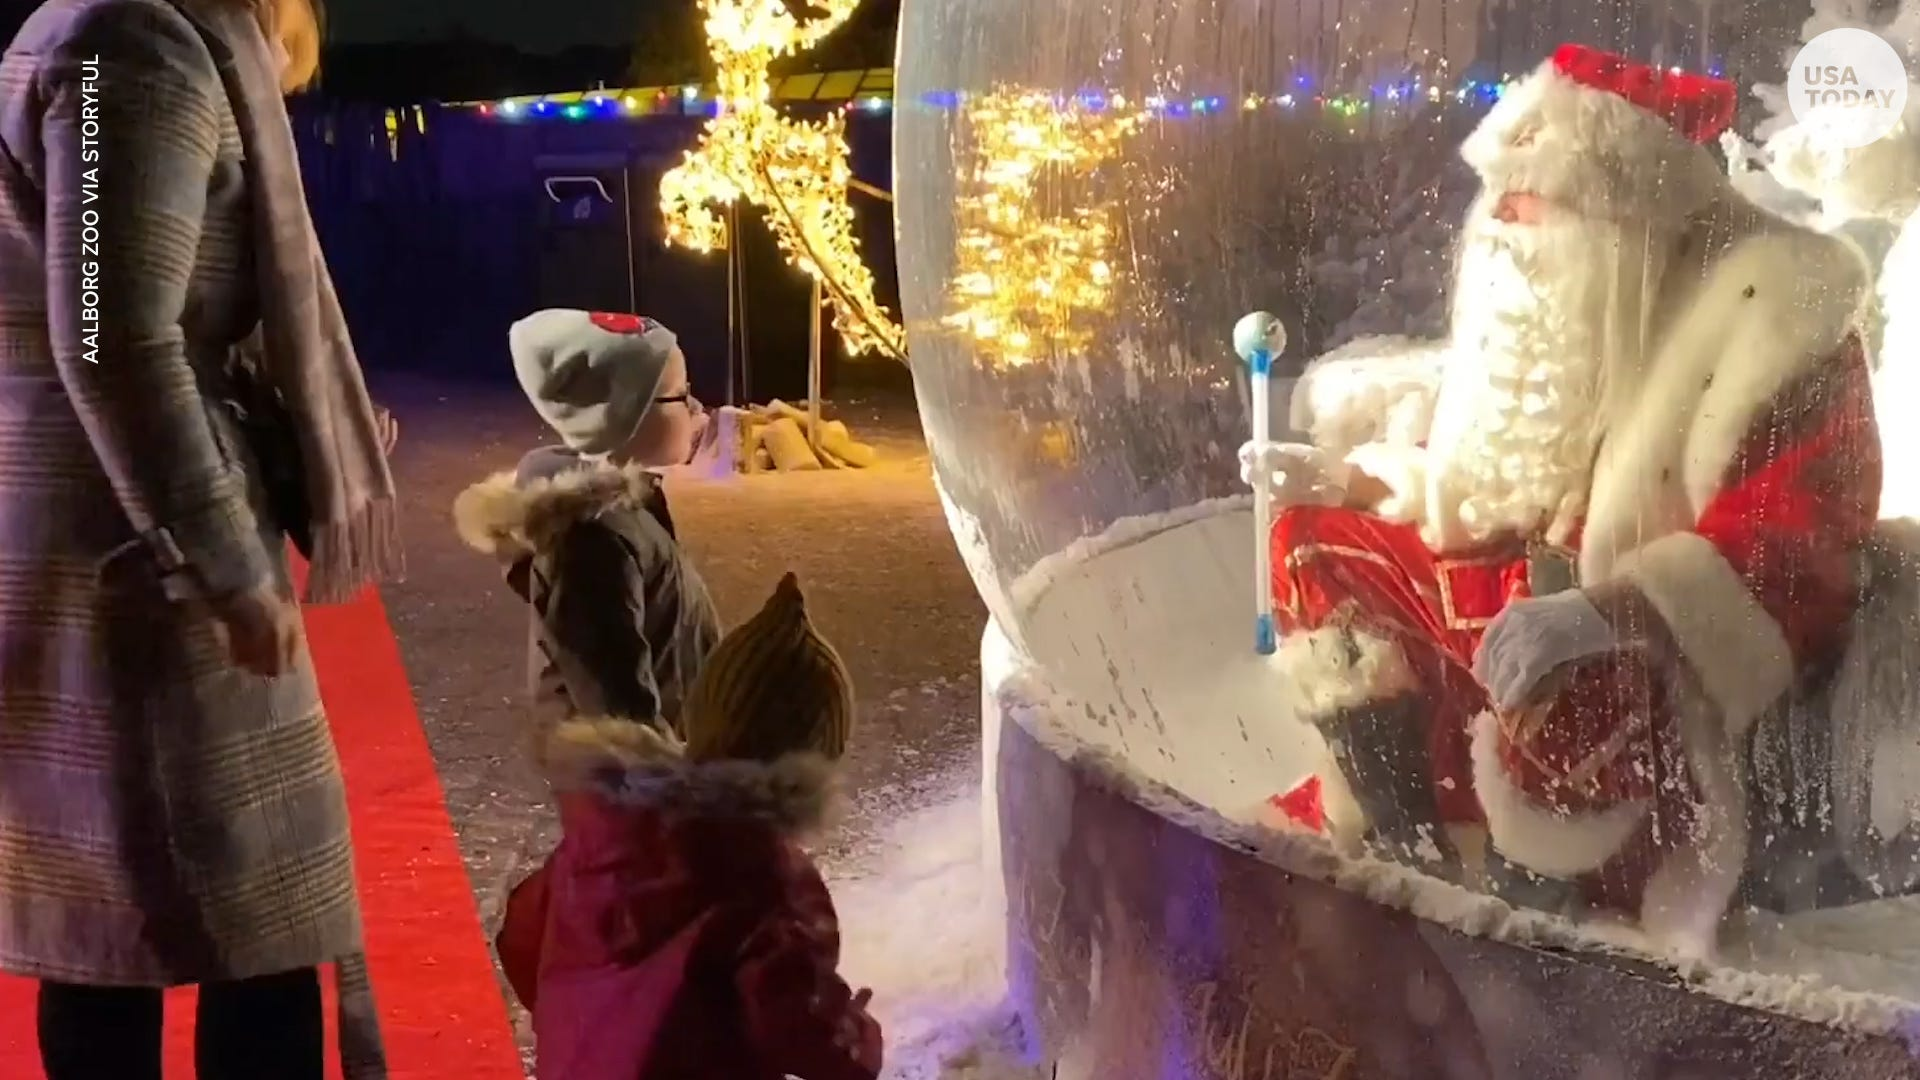 Santa greets children from inside snow globe to practice social distancing